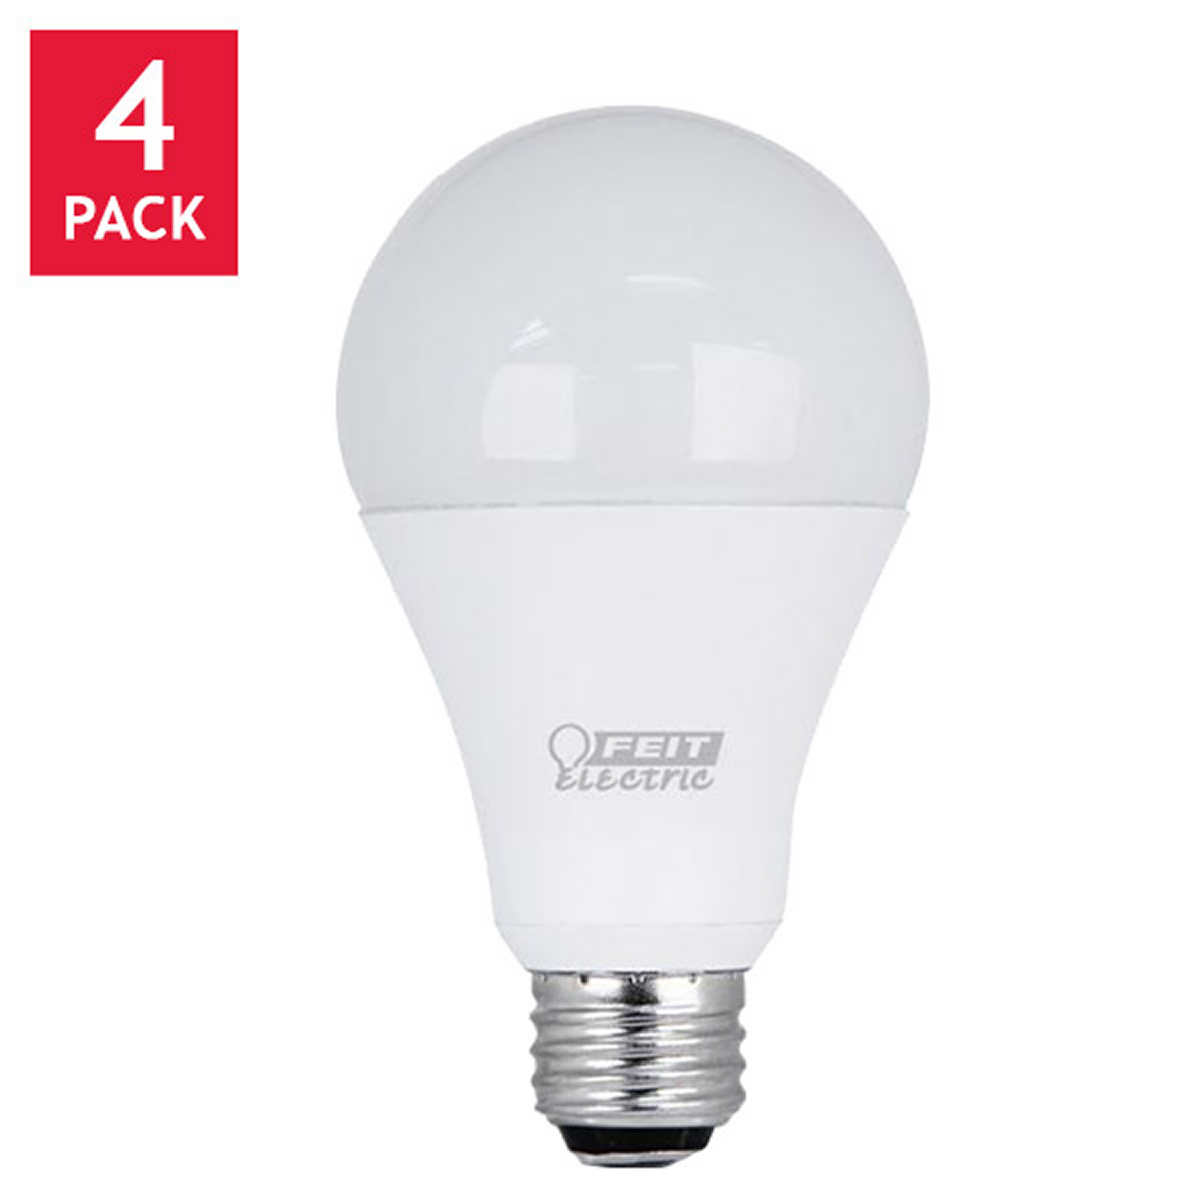 Led Lighting Bulbs: Feit LED 3-Way Bulb 50W/100W/150W Replacement 4-pack,Lighting